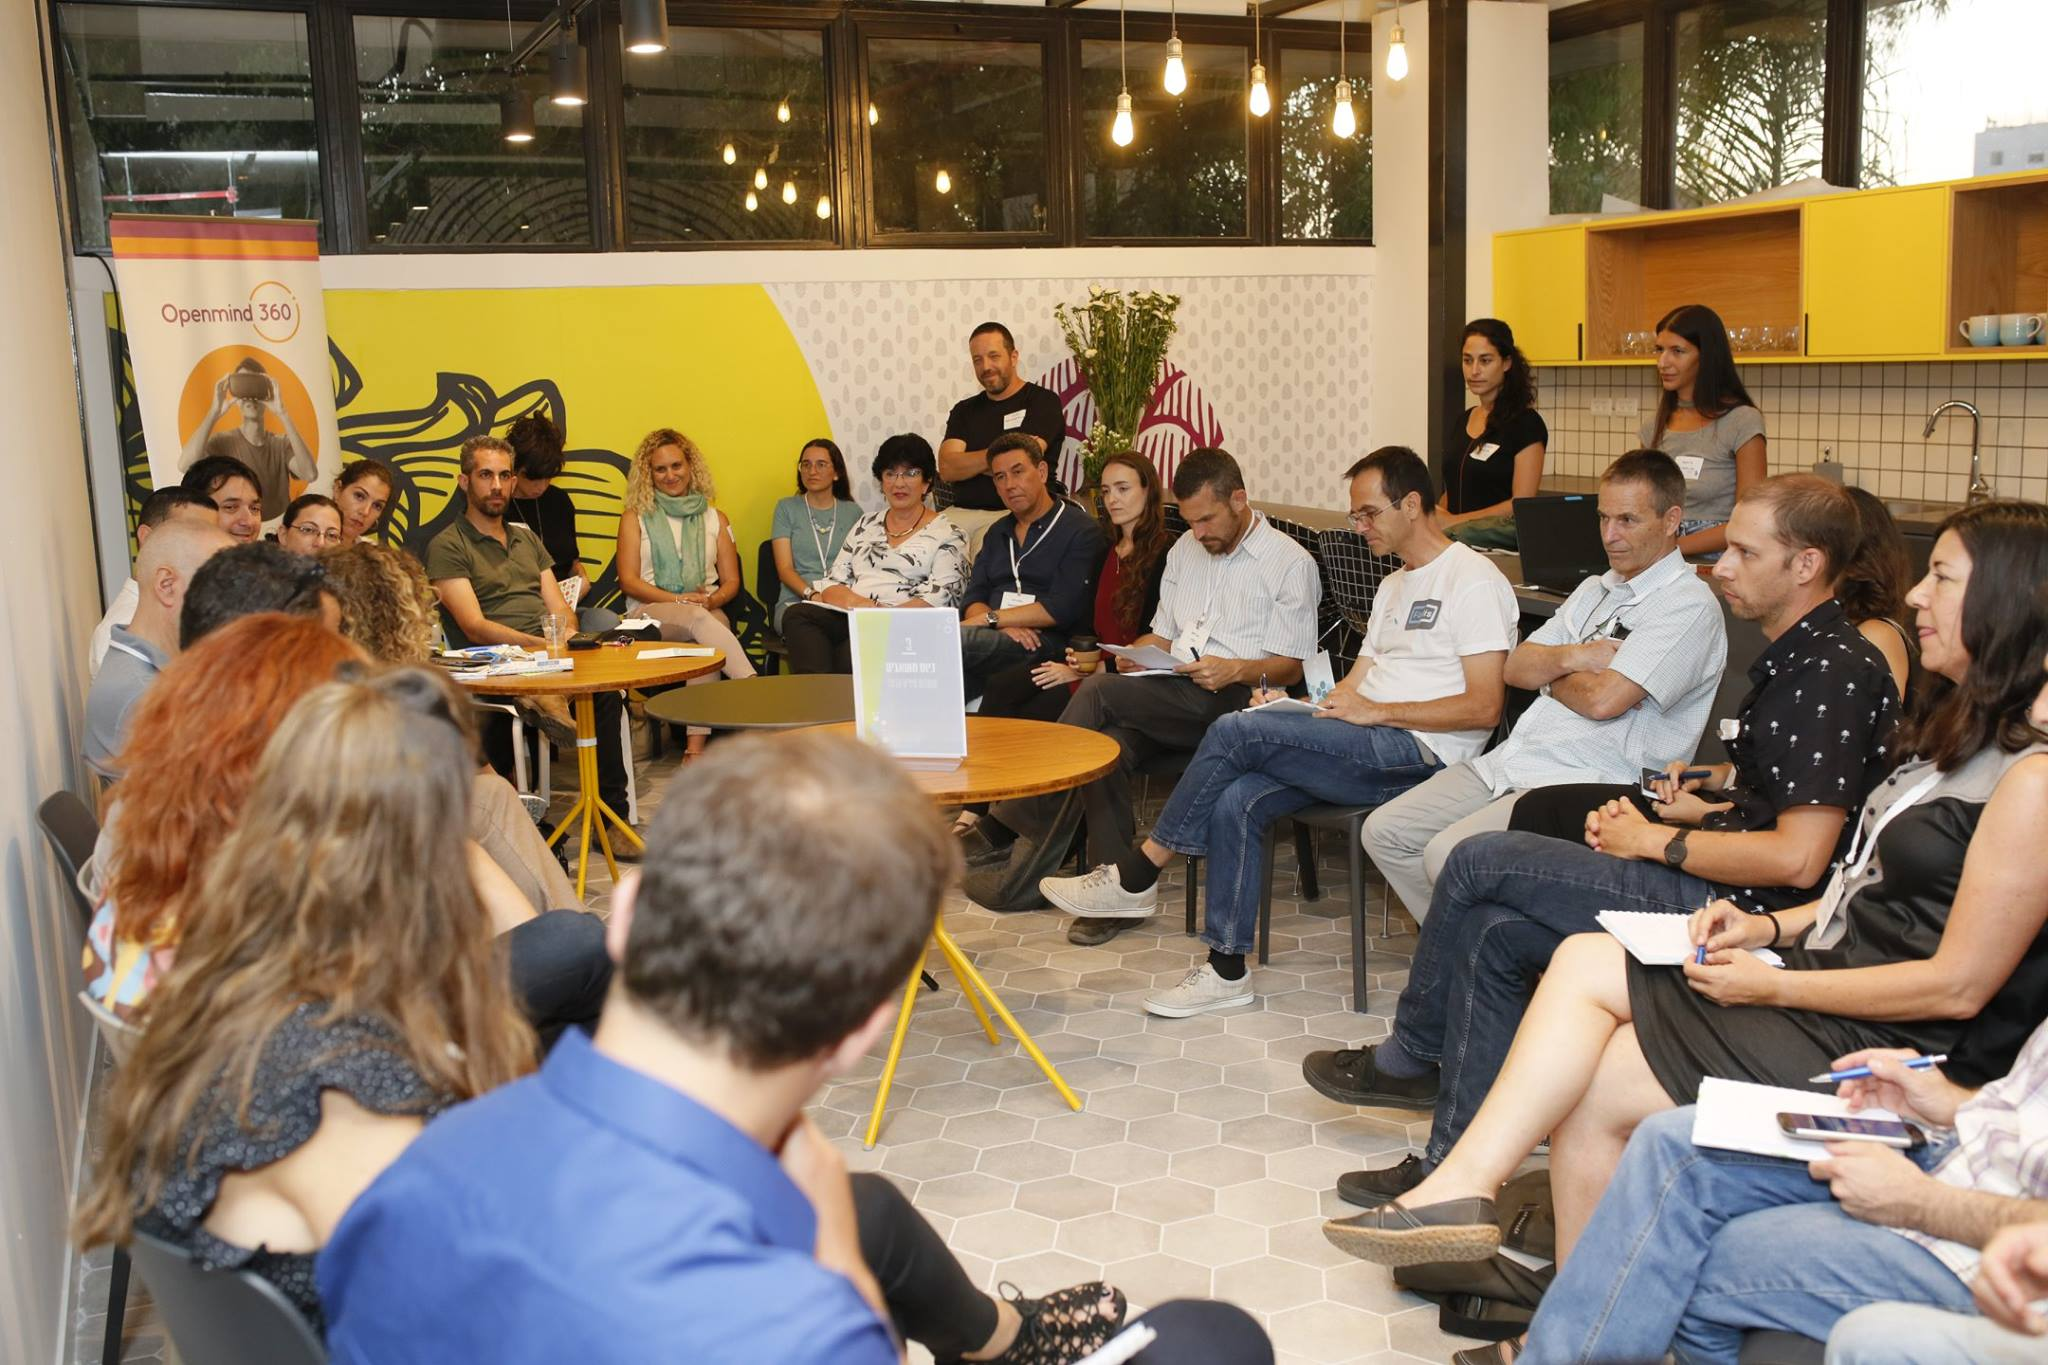 Hackaveret - Combating the cycle of poverty with innovative projects - SDG 1 - Social Impact Israel